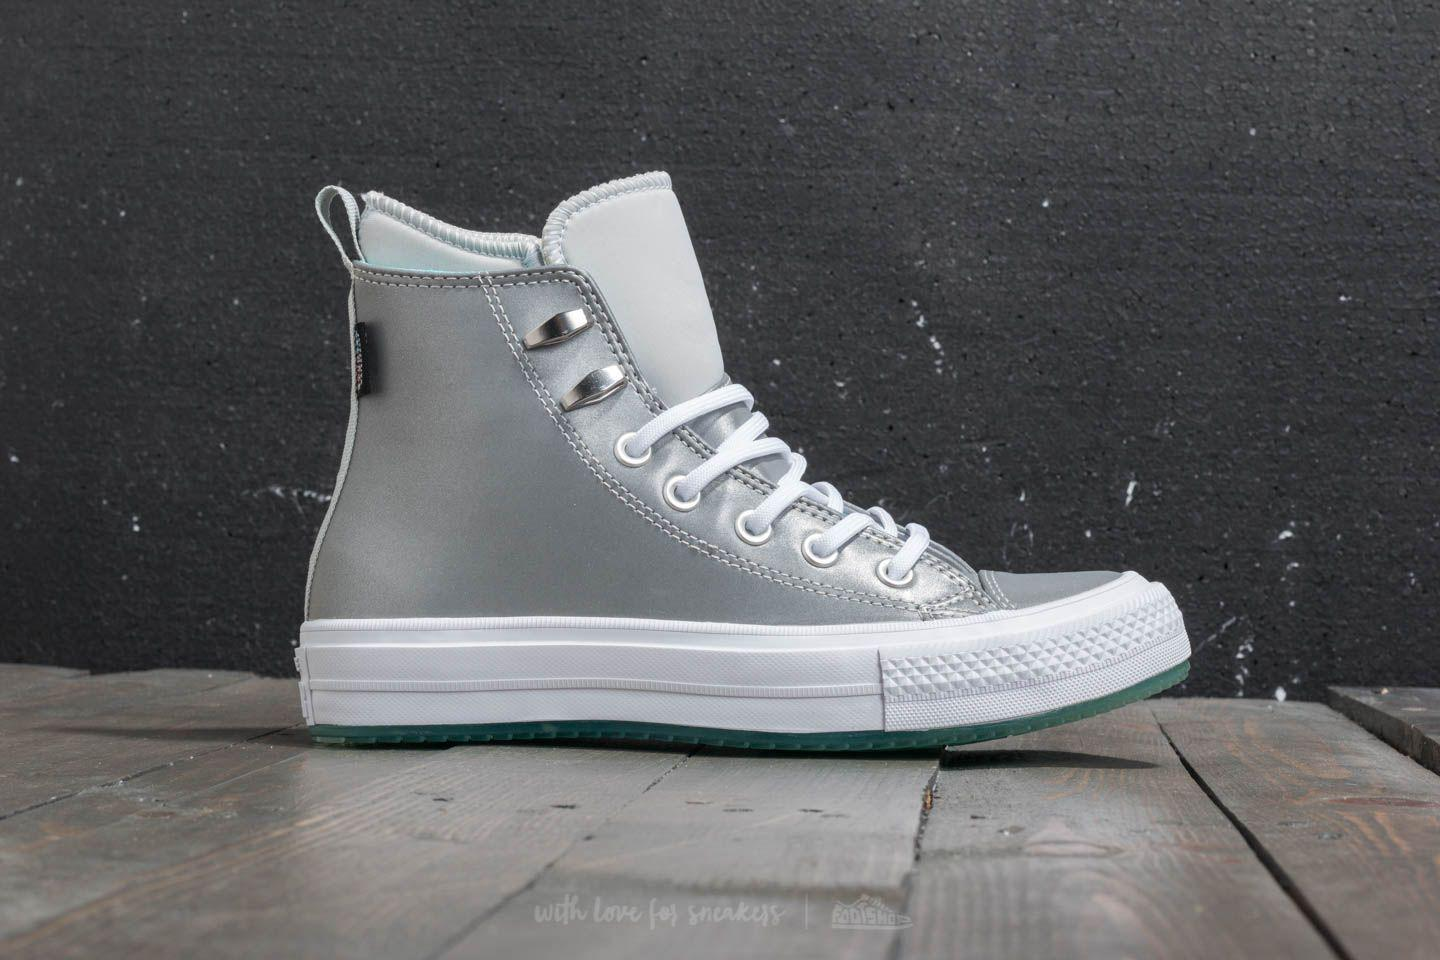 Converse Chuck Taylor All Star Waterproof Boot Hi Pure Platinum/ Light Aqua/ White 152BVp